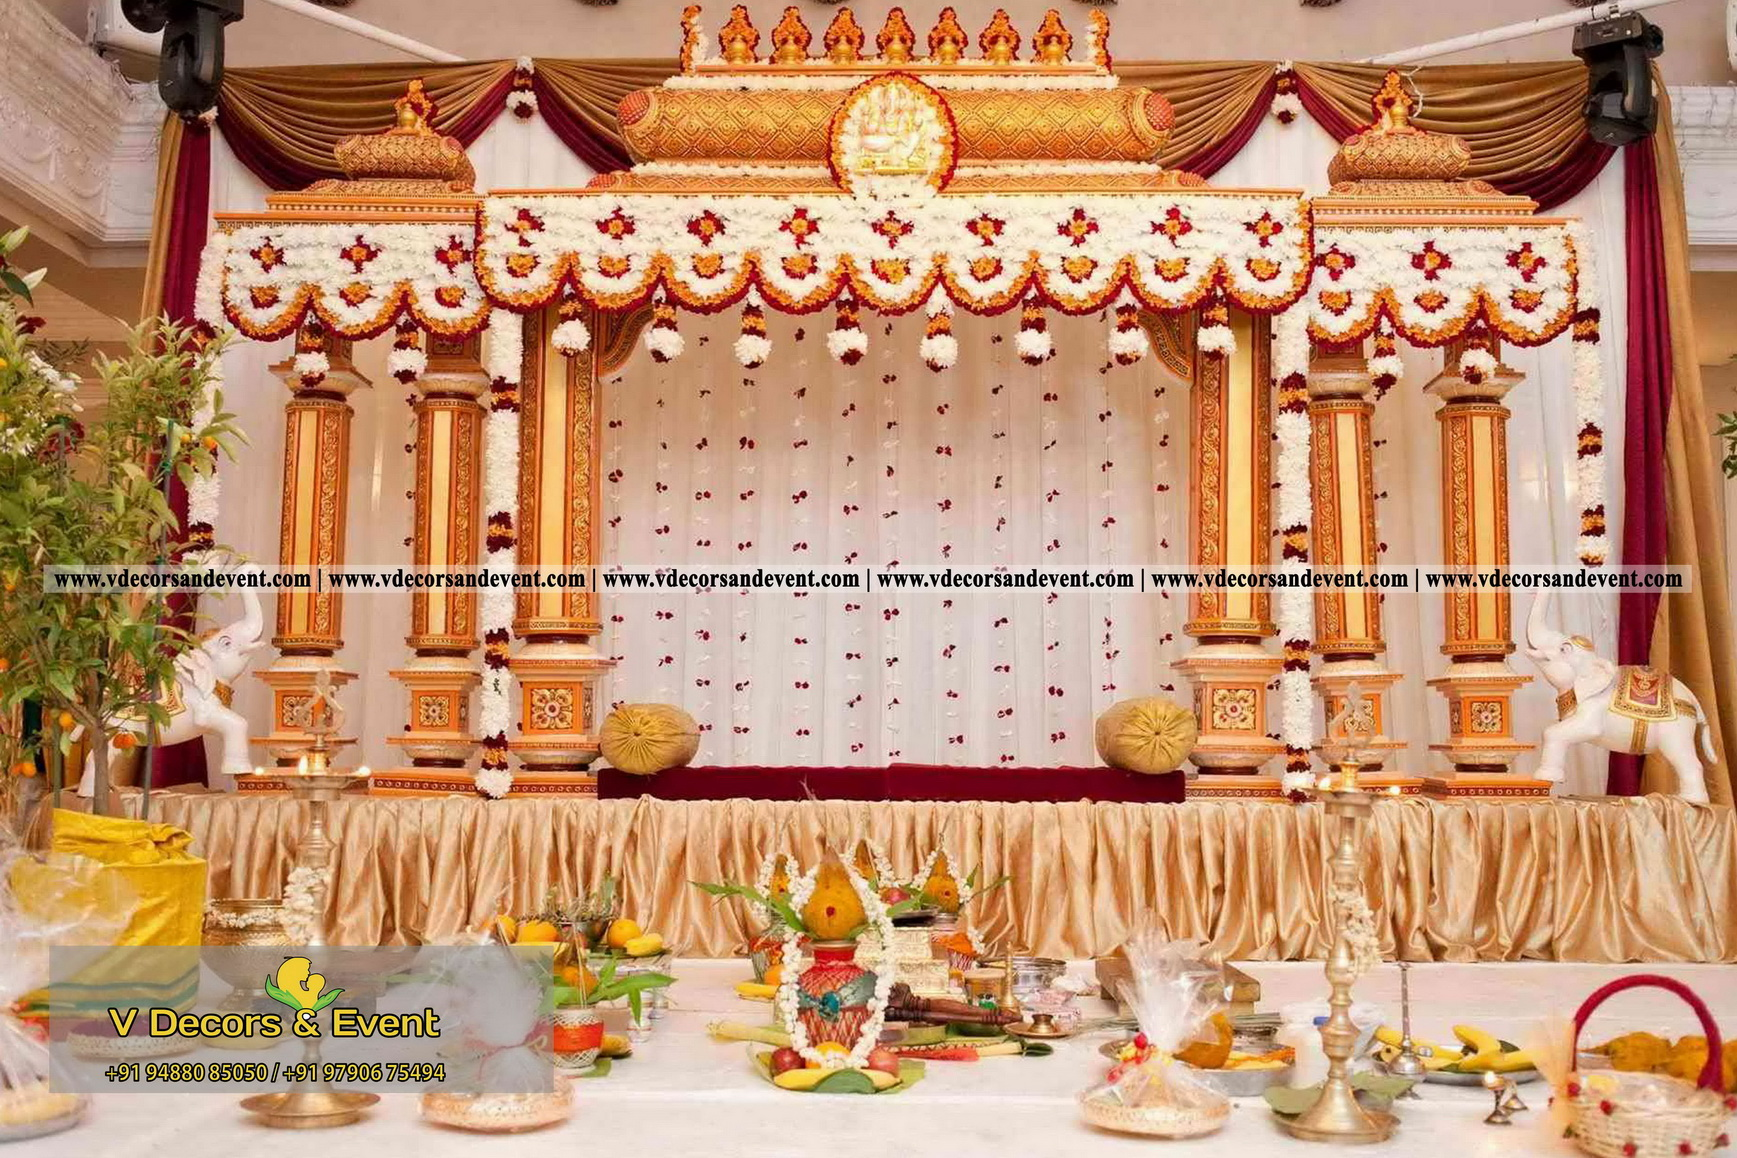 Wedding Decorations India 2018Wedding Decorators 2018